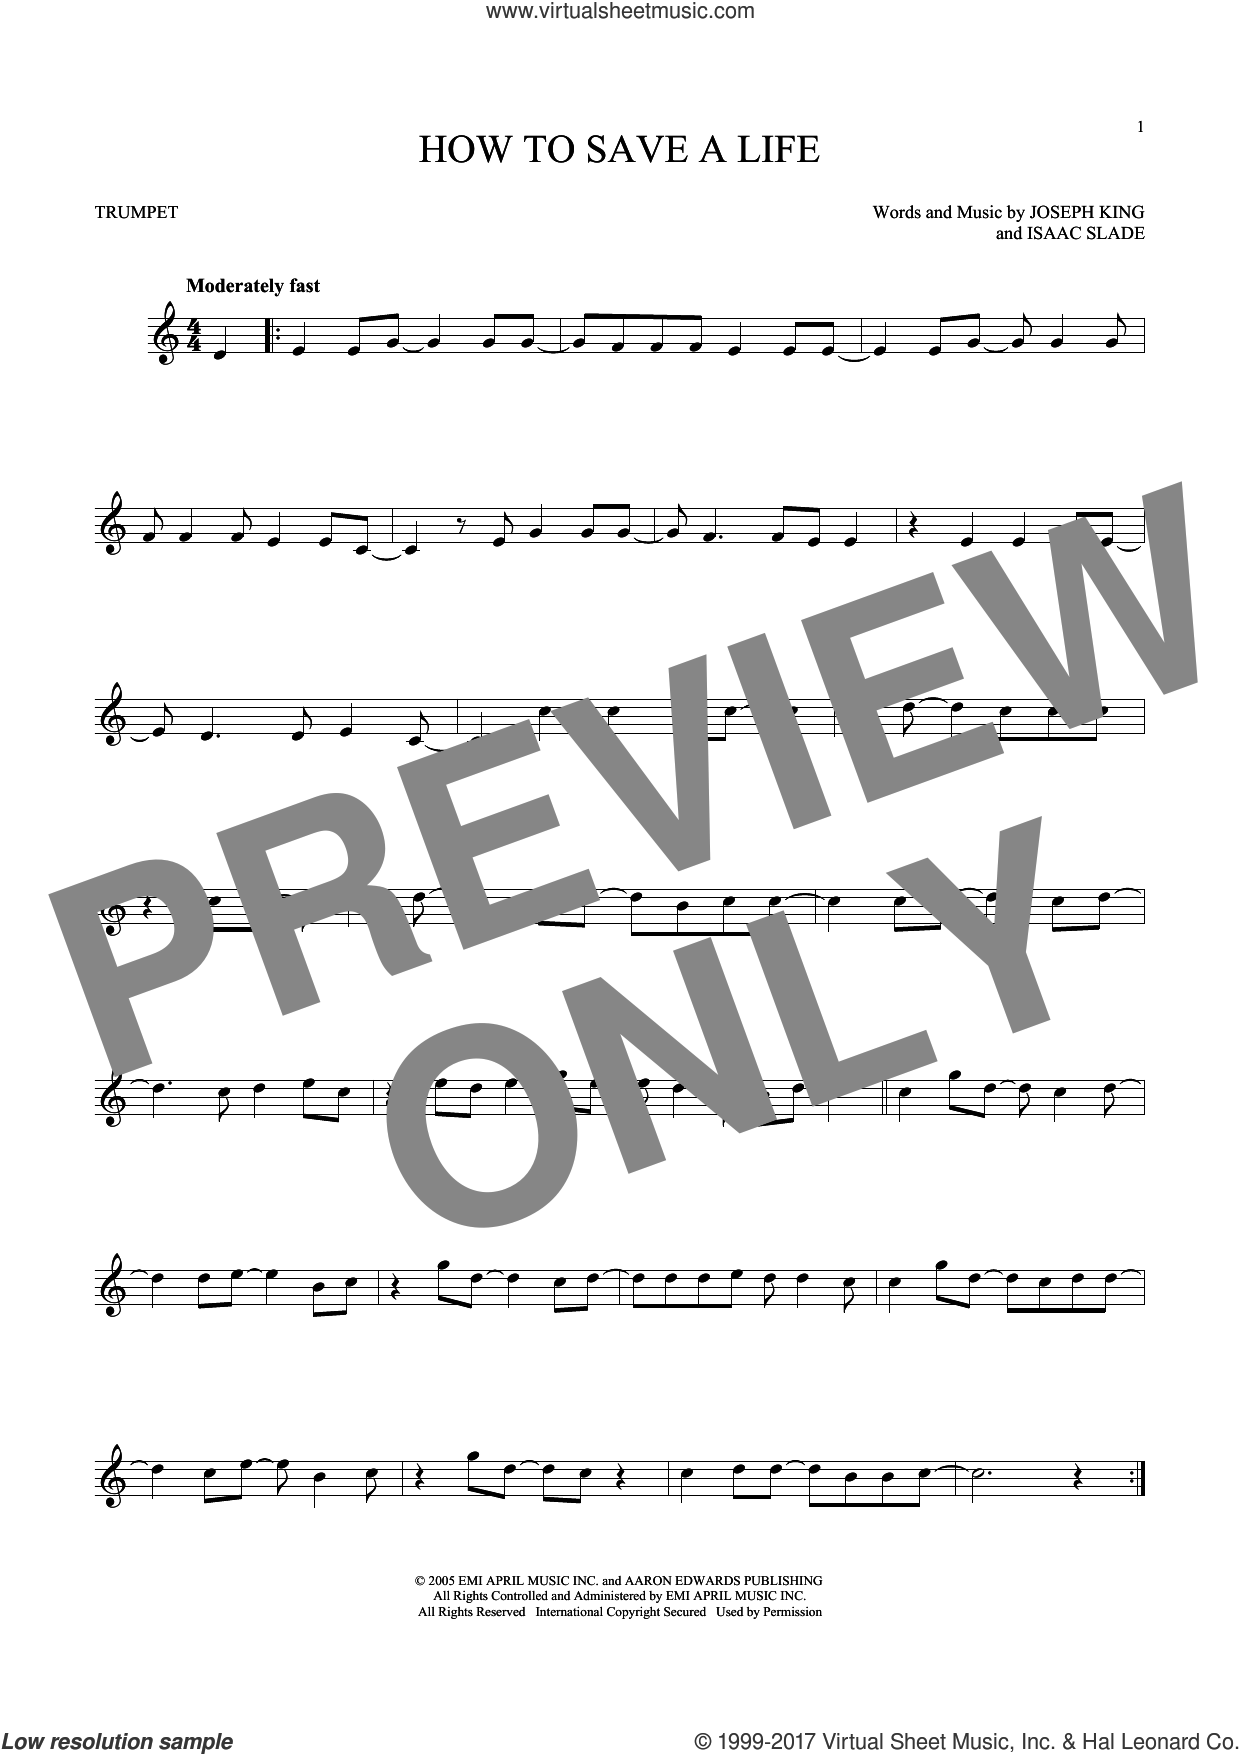 How To Save A Life sheet music for trumpet solo by The Fray, Isaac Slade and Joseph King, intermediate skill level